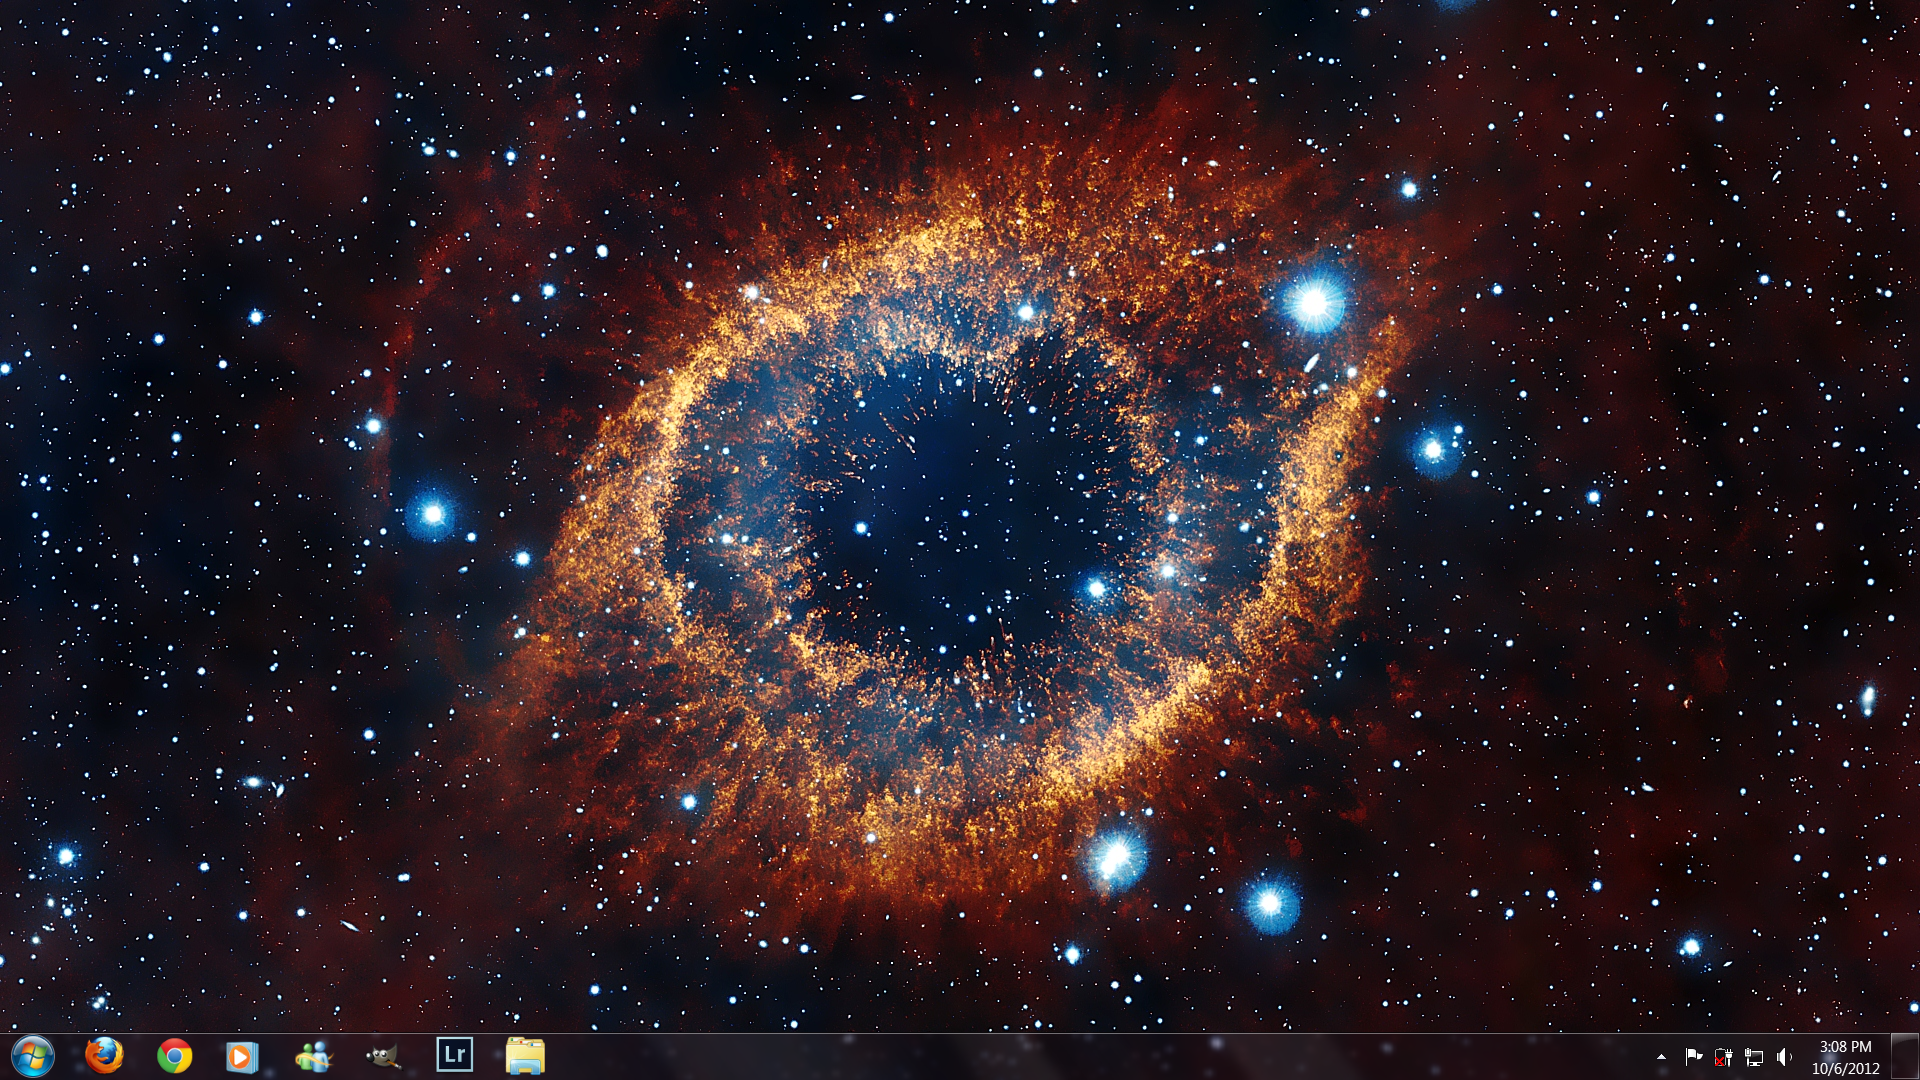 Infrared Visible Light Comparison View Of The Helix Nebula: Infrared Helix Nebula Wallpaper By Unstung On DeviantArt